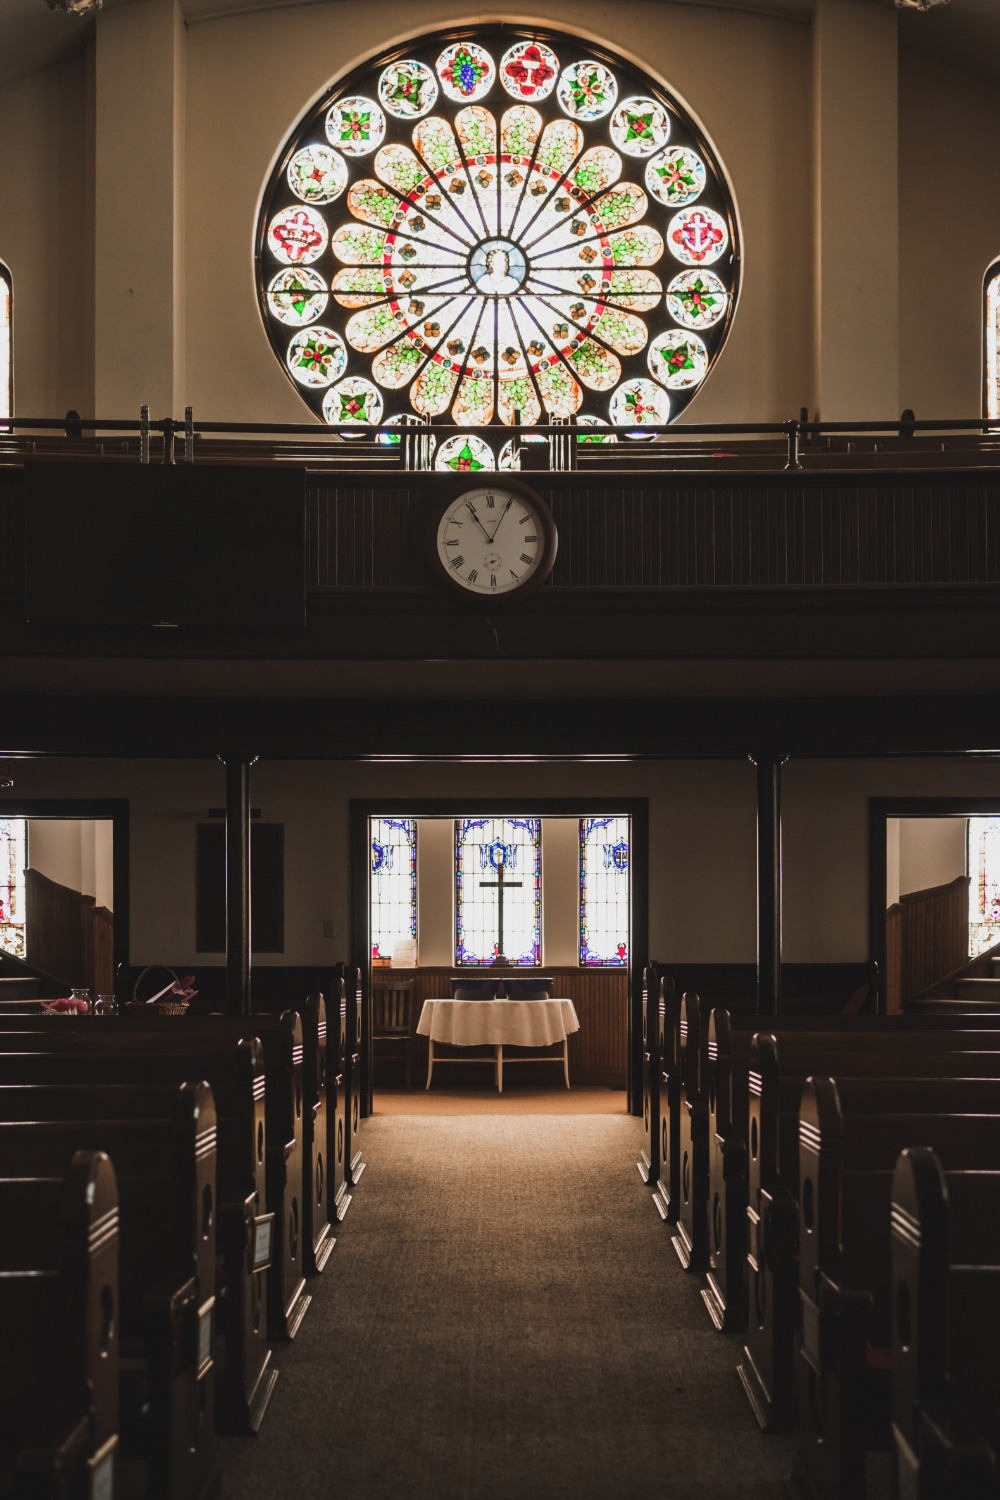 stained glass windows at the wedding chapel